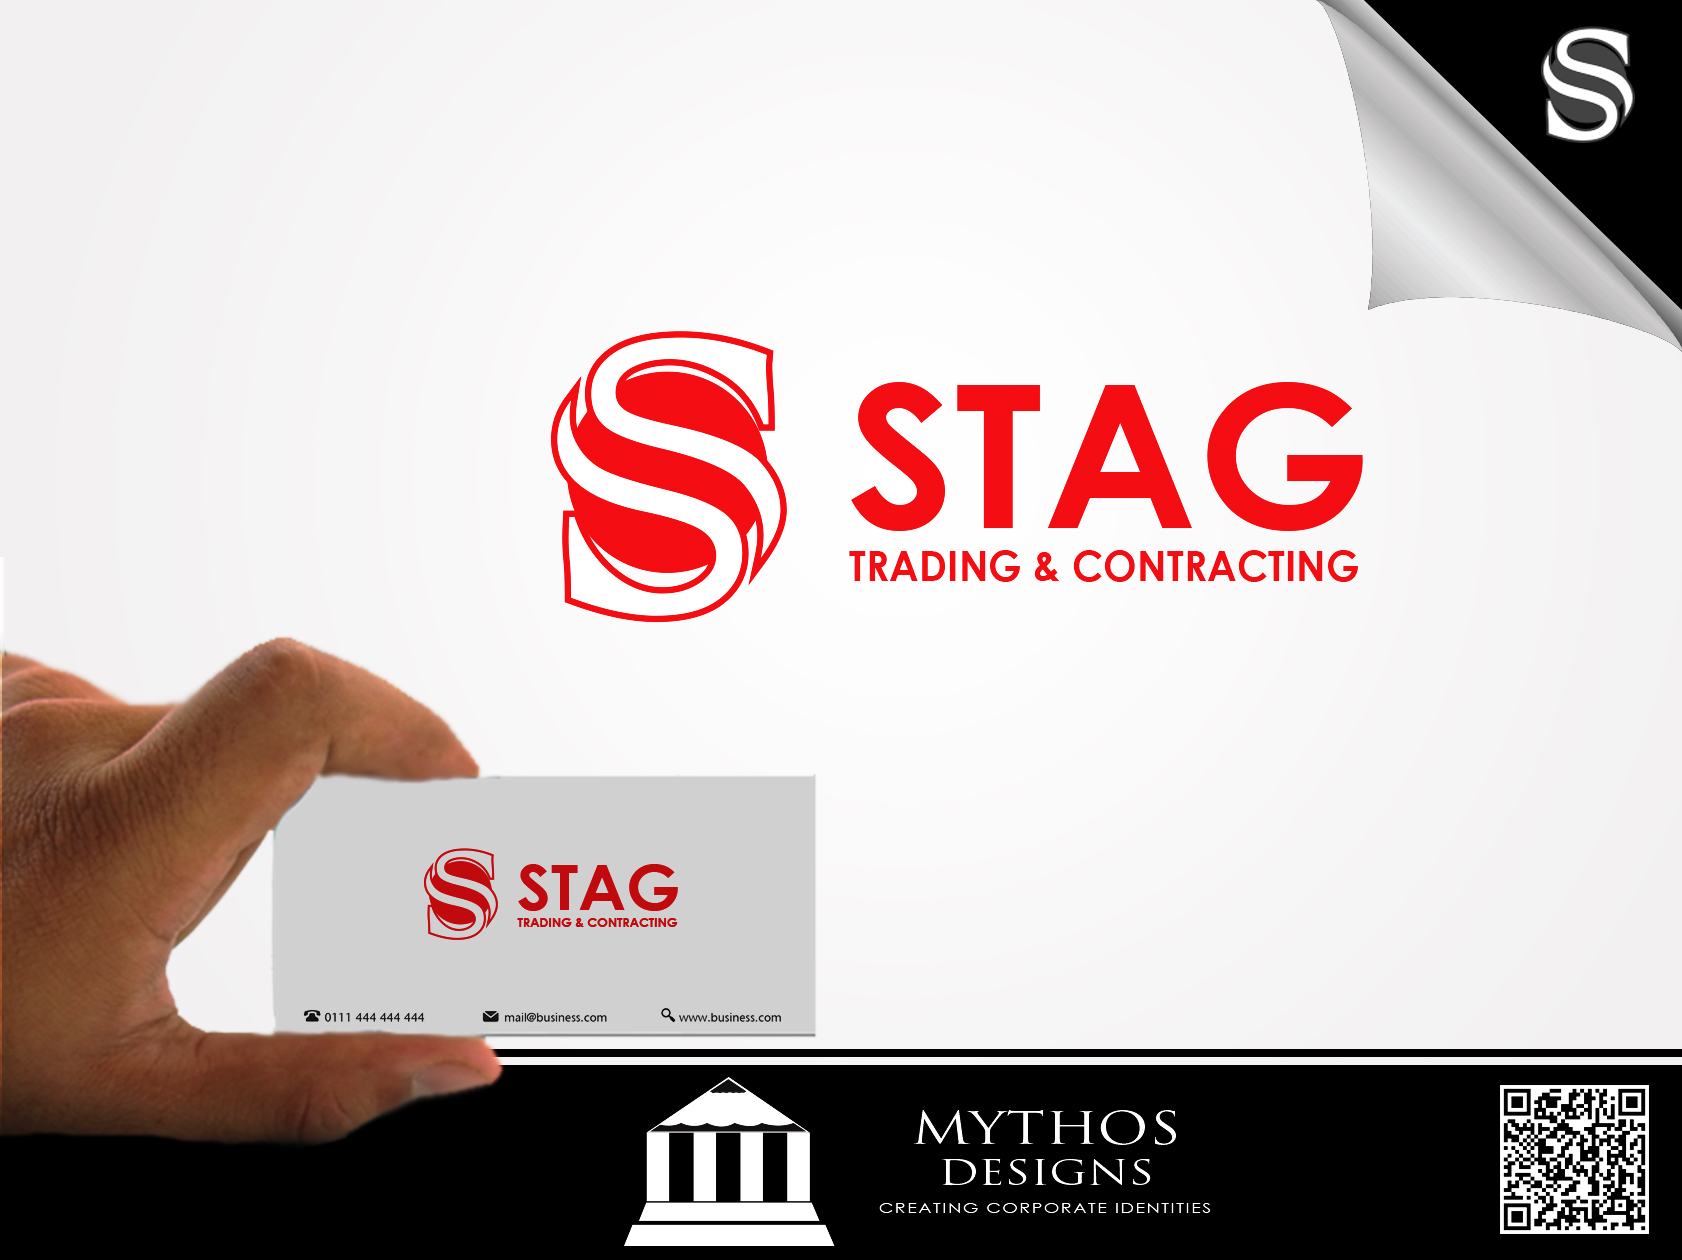 Logo Design by Mythos Designs - Entry No. 314 in the Logo Design Contest Captivating Logo Design for STAG Trading & Contracting.